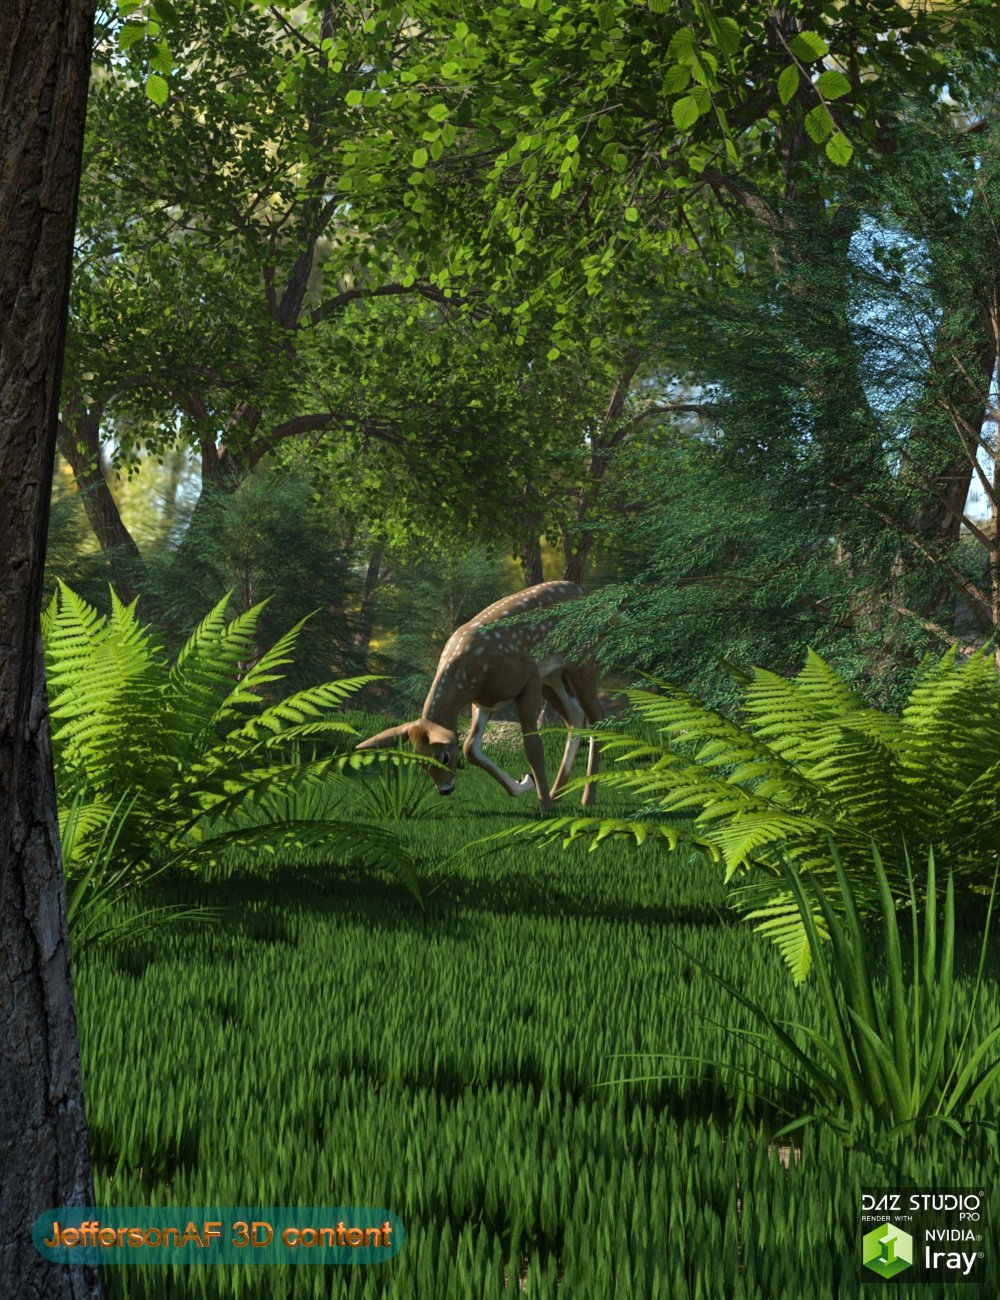 Special Plants and Trees for Iray by: JeffersonAF, 3D Models by Daz 3D